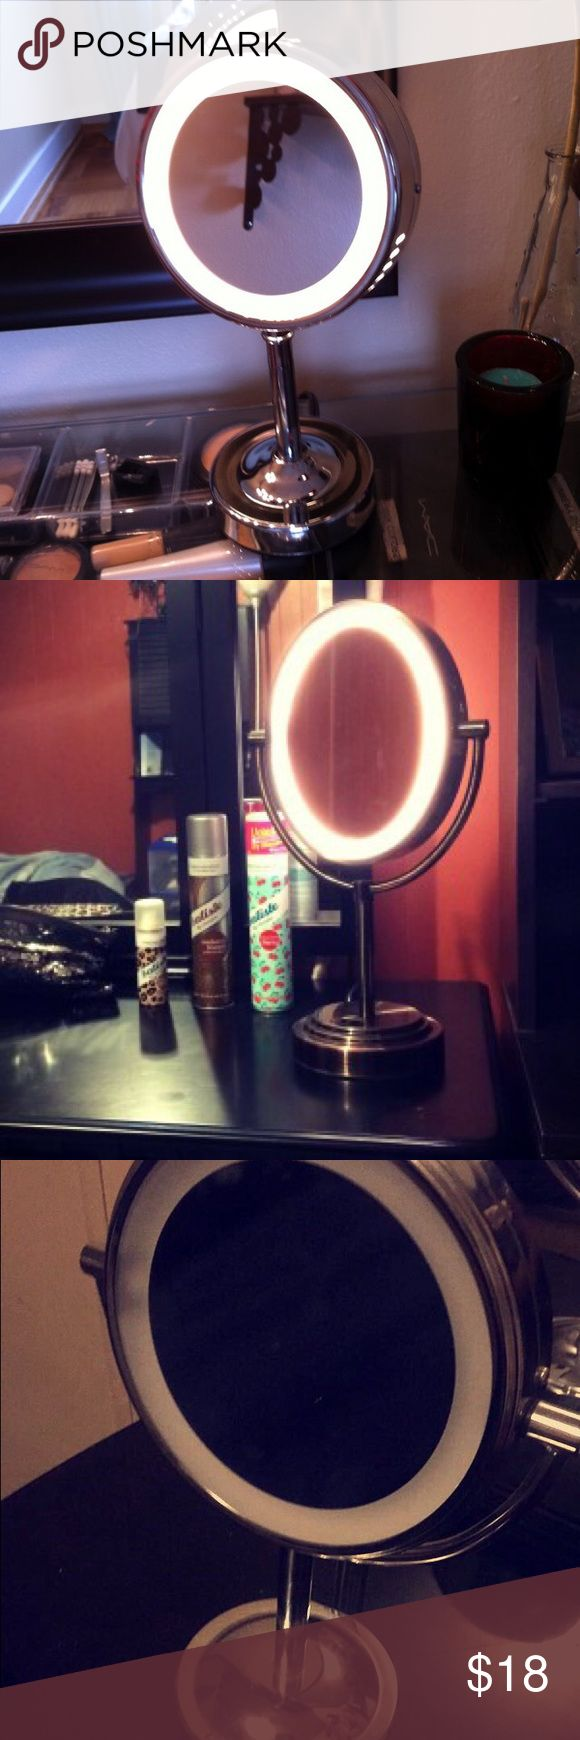 Conair double sided light-up makeup mirror Lights up| double sided mirror| good for makeup vanity| good condition| runs on batteries| offer button conair Makeup